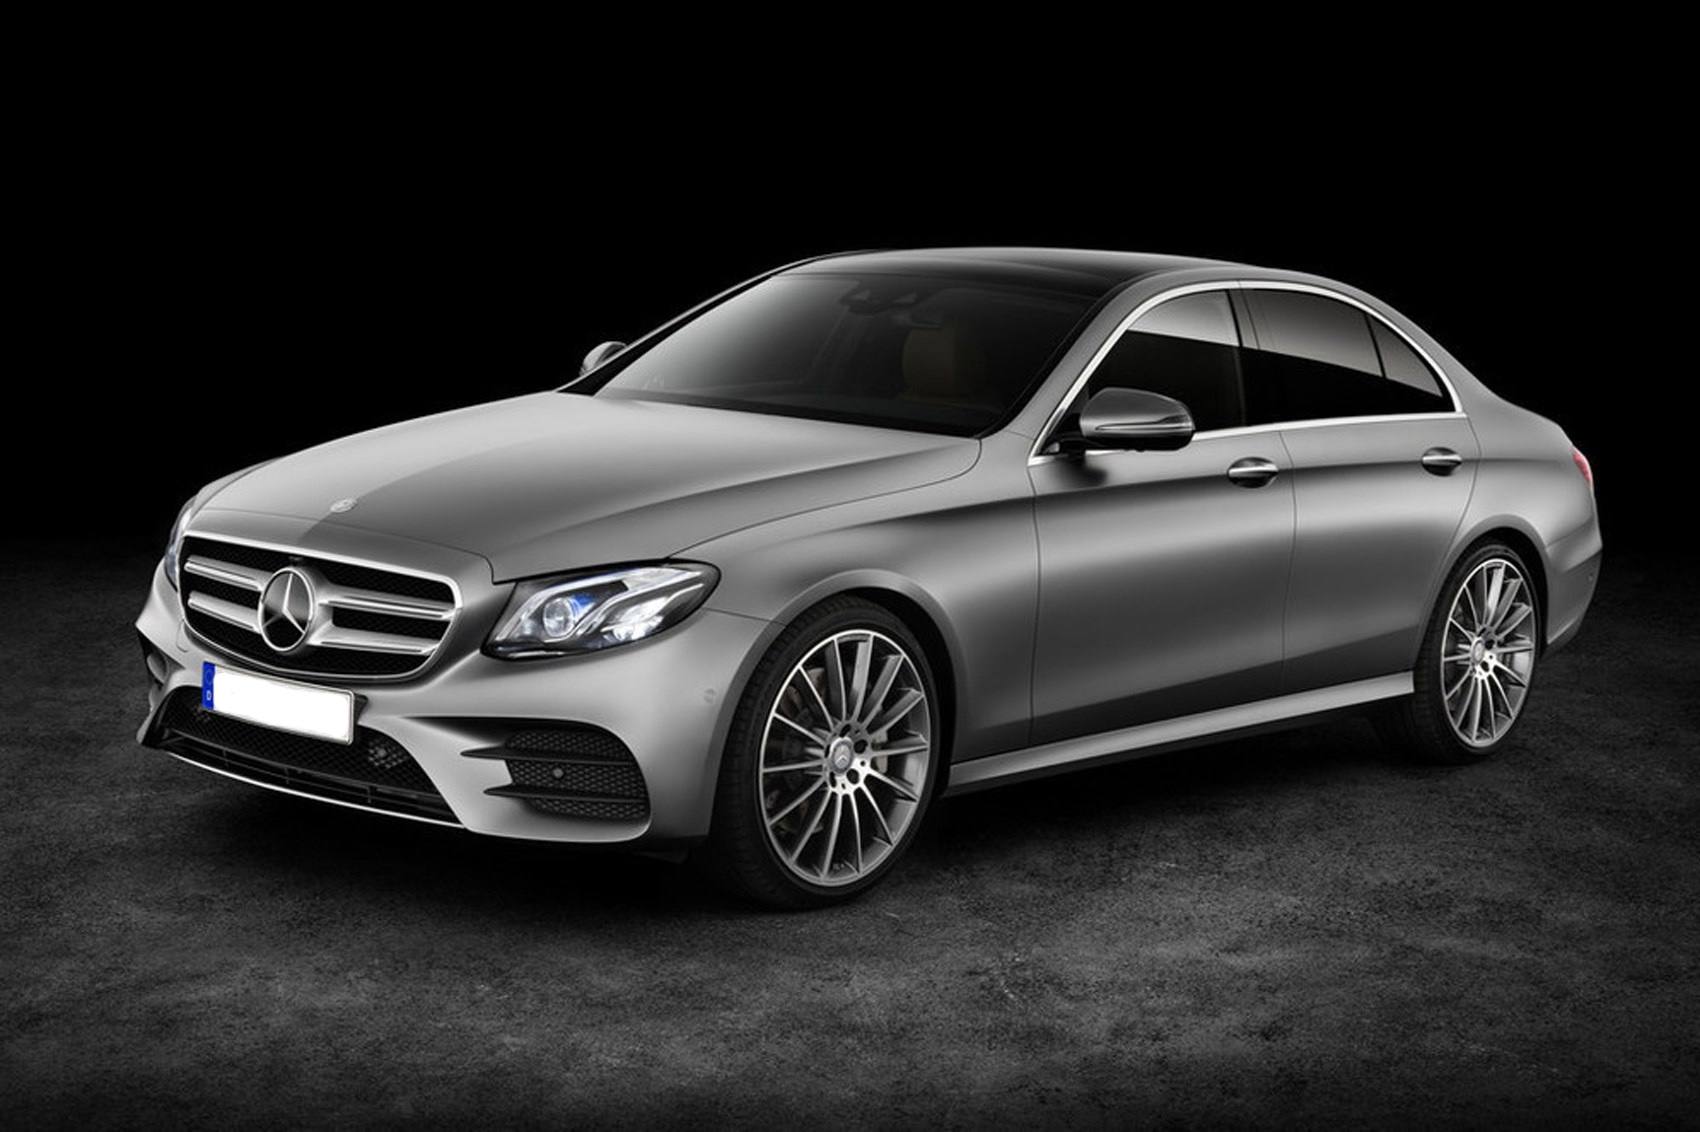 Mercedes-Benz E-Class - Chauffeur-driven car hire - Cobham, Surrey